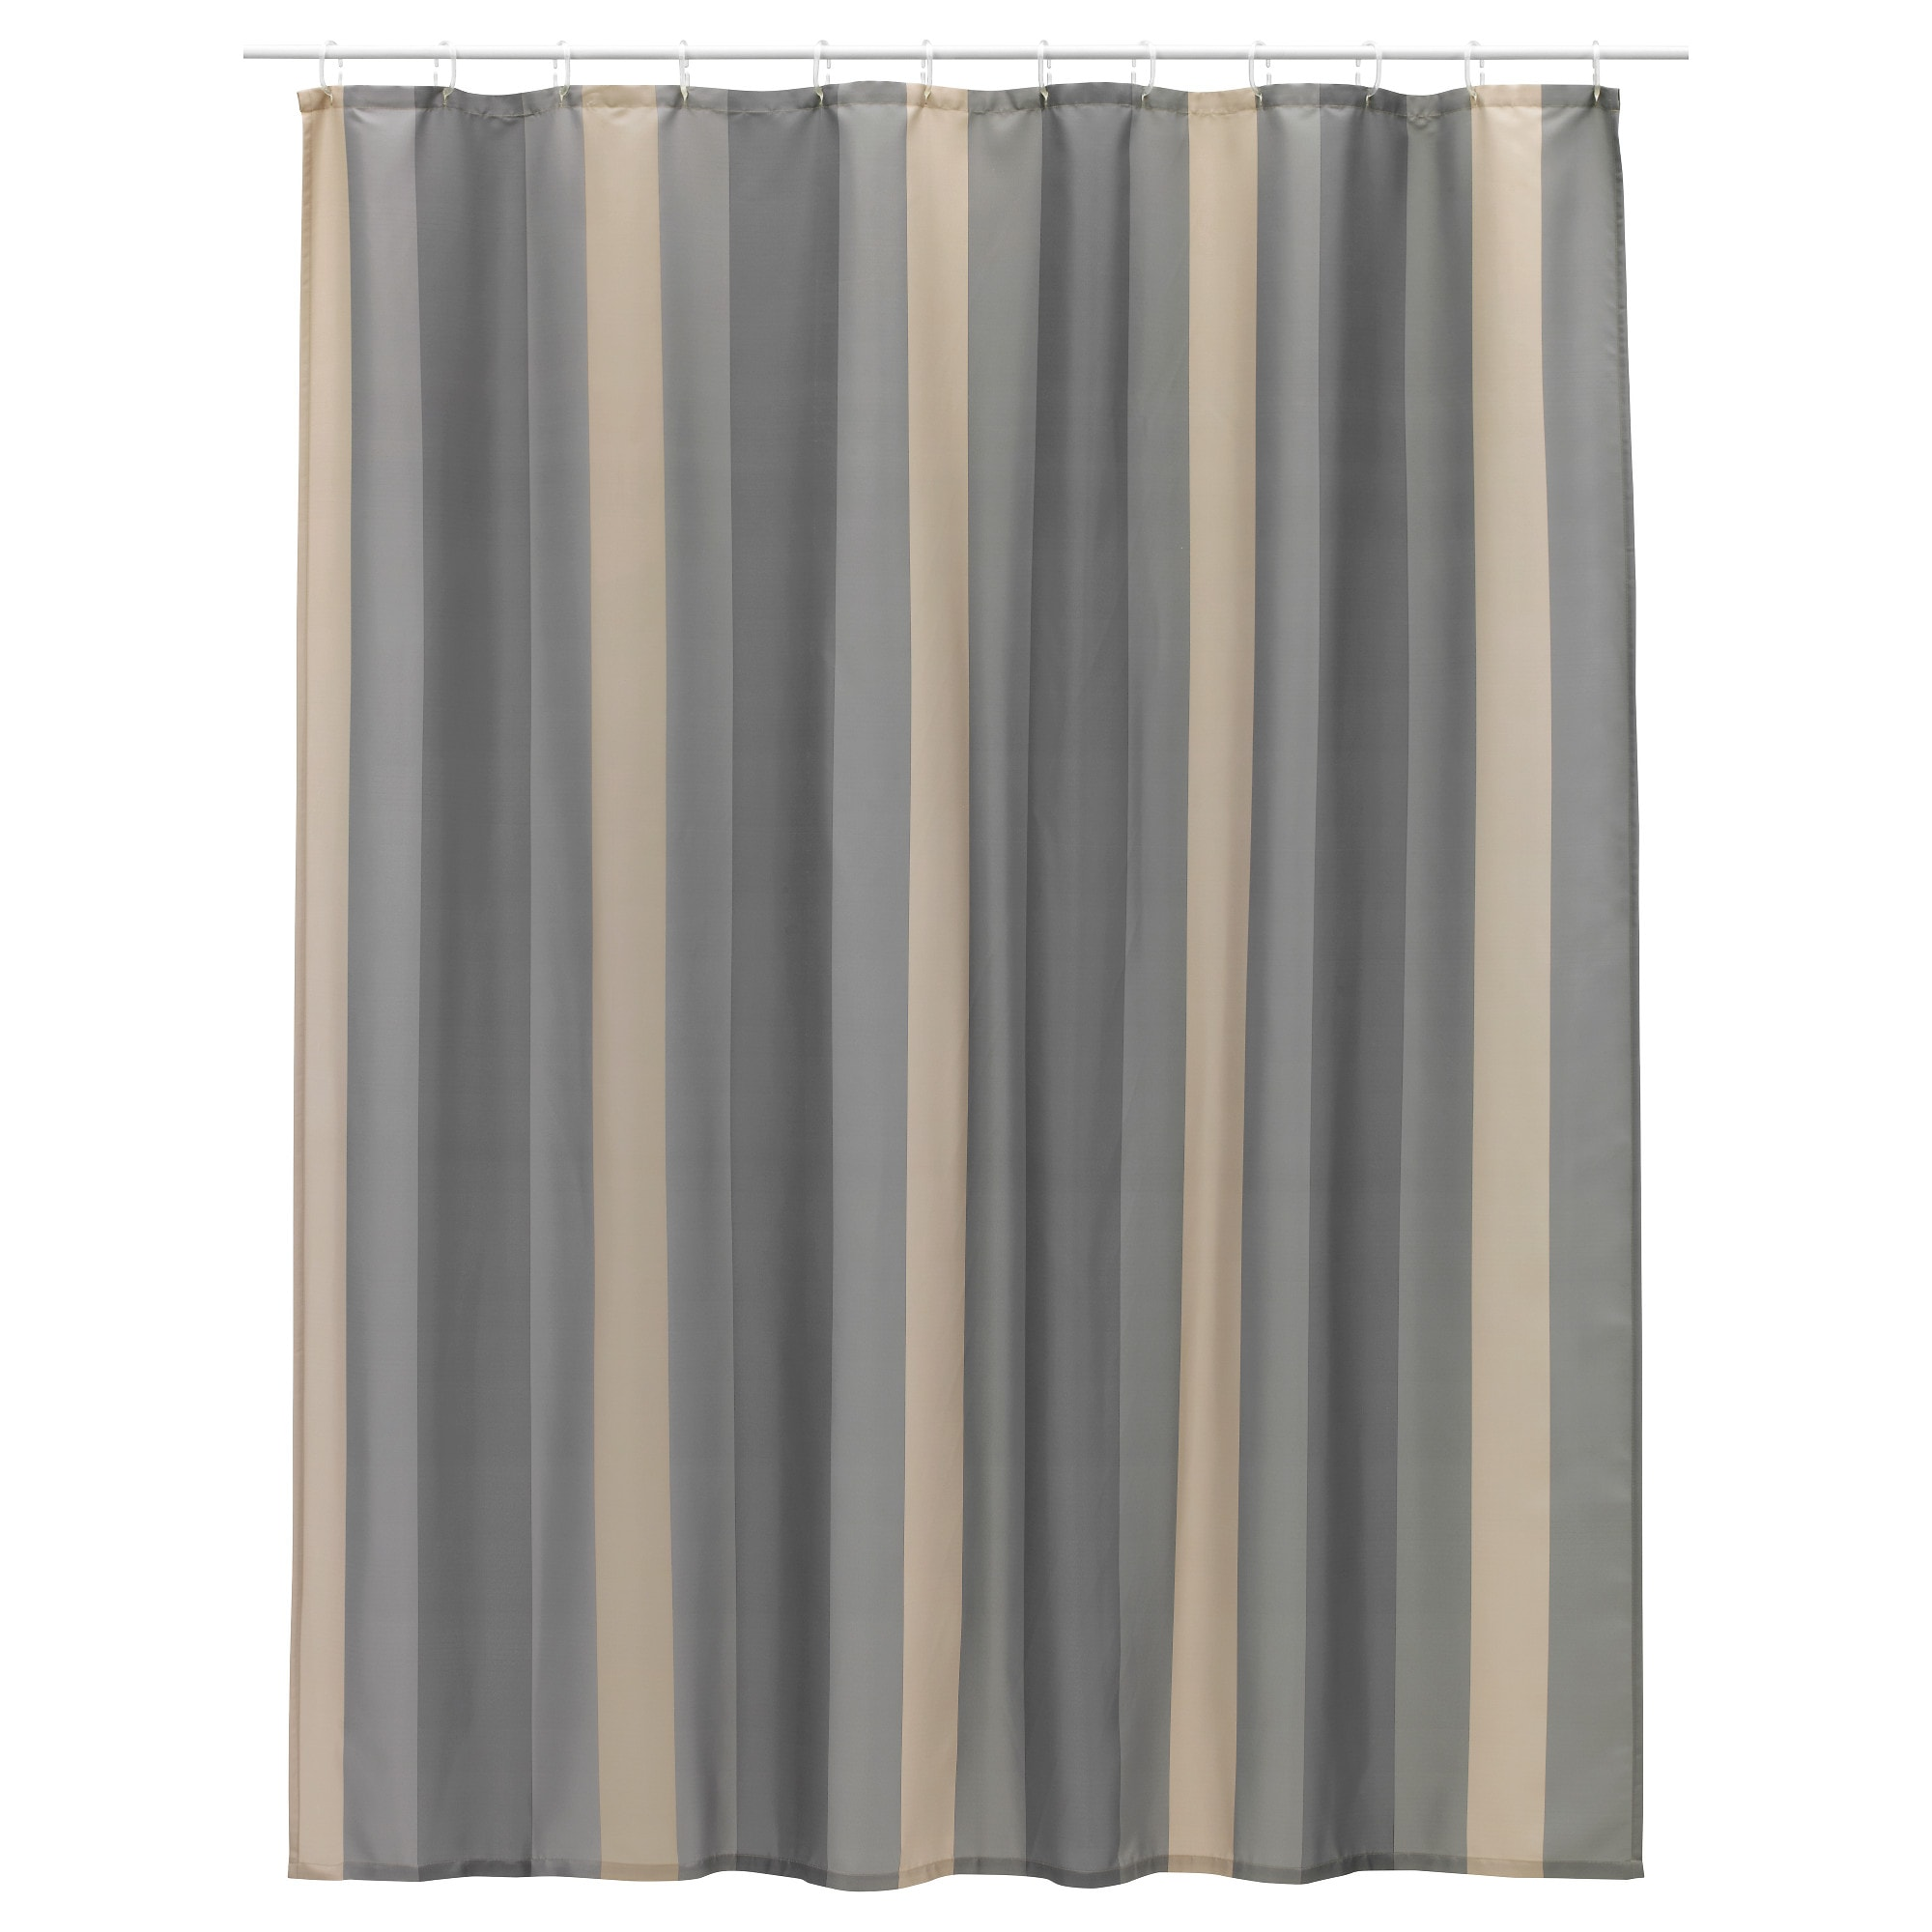 Charmant BJÖRNÅN Shower Curtain   IKEA